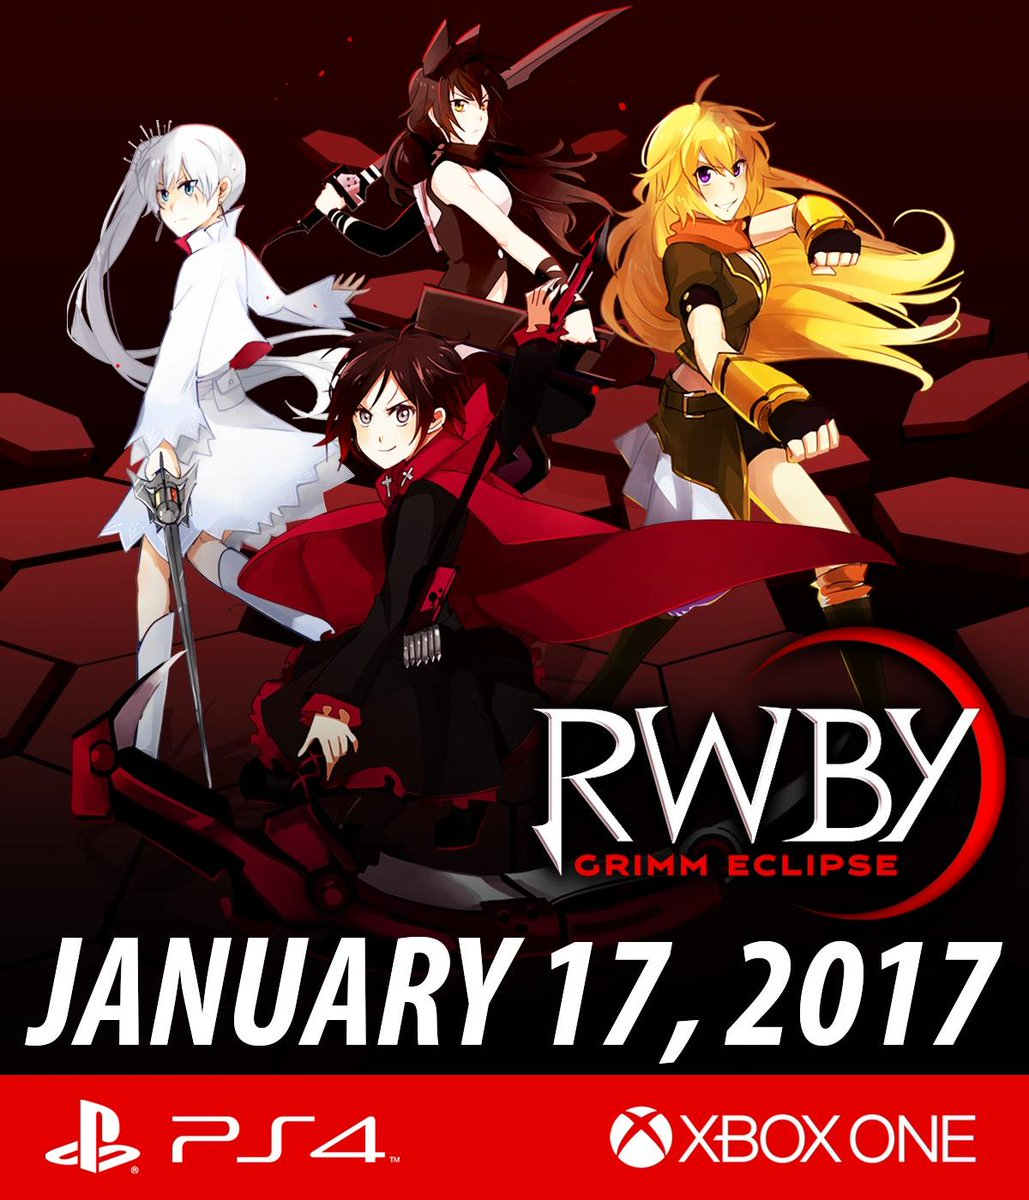 Hack and Slash Adventure RWBY: Grimm Eclipse Coming to Xbox One https://t.co/5l6OGYapND https://t.co/RYue0DtB85